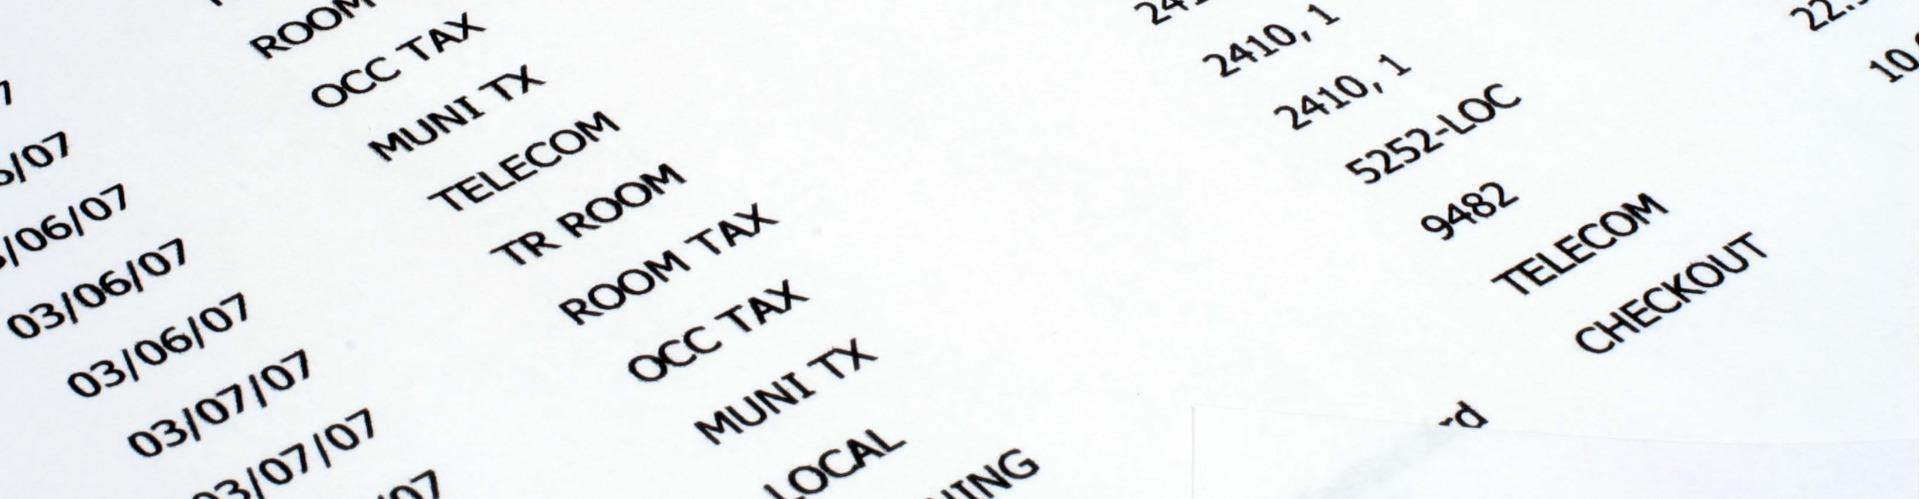 Hotel-Motel Excise Tax